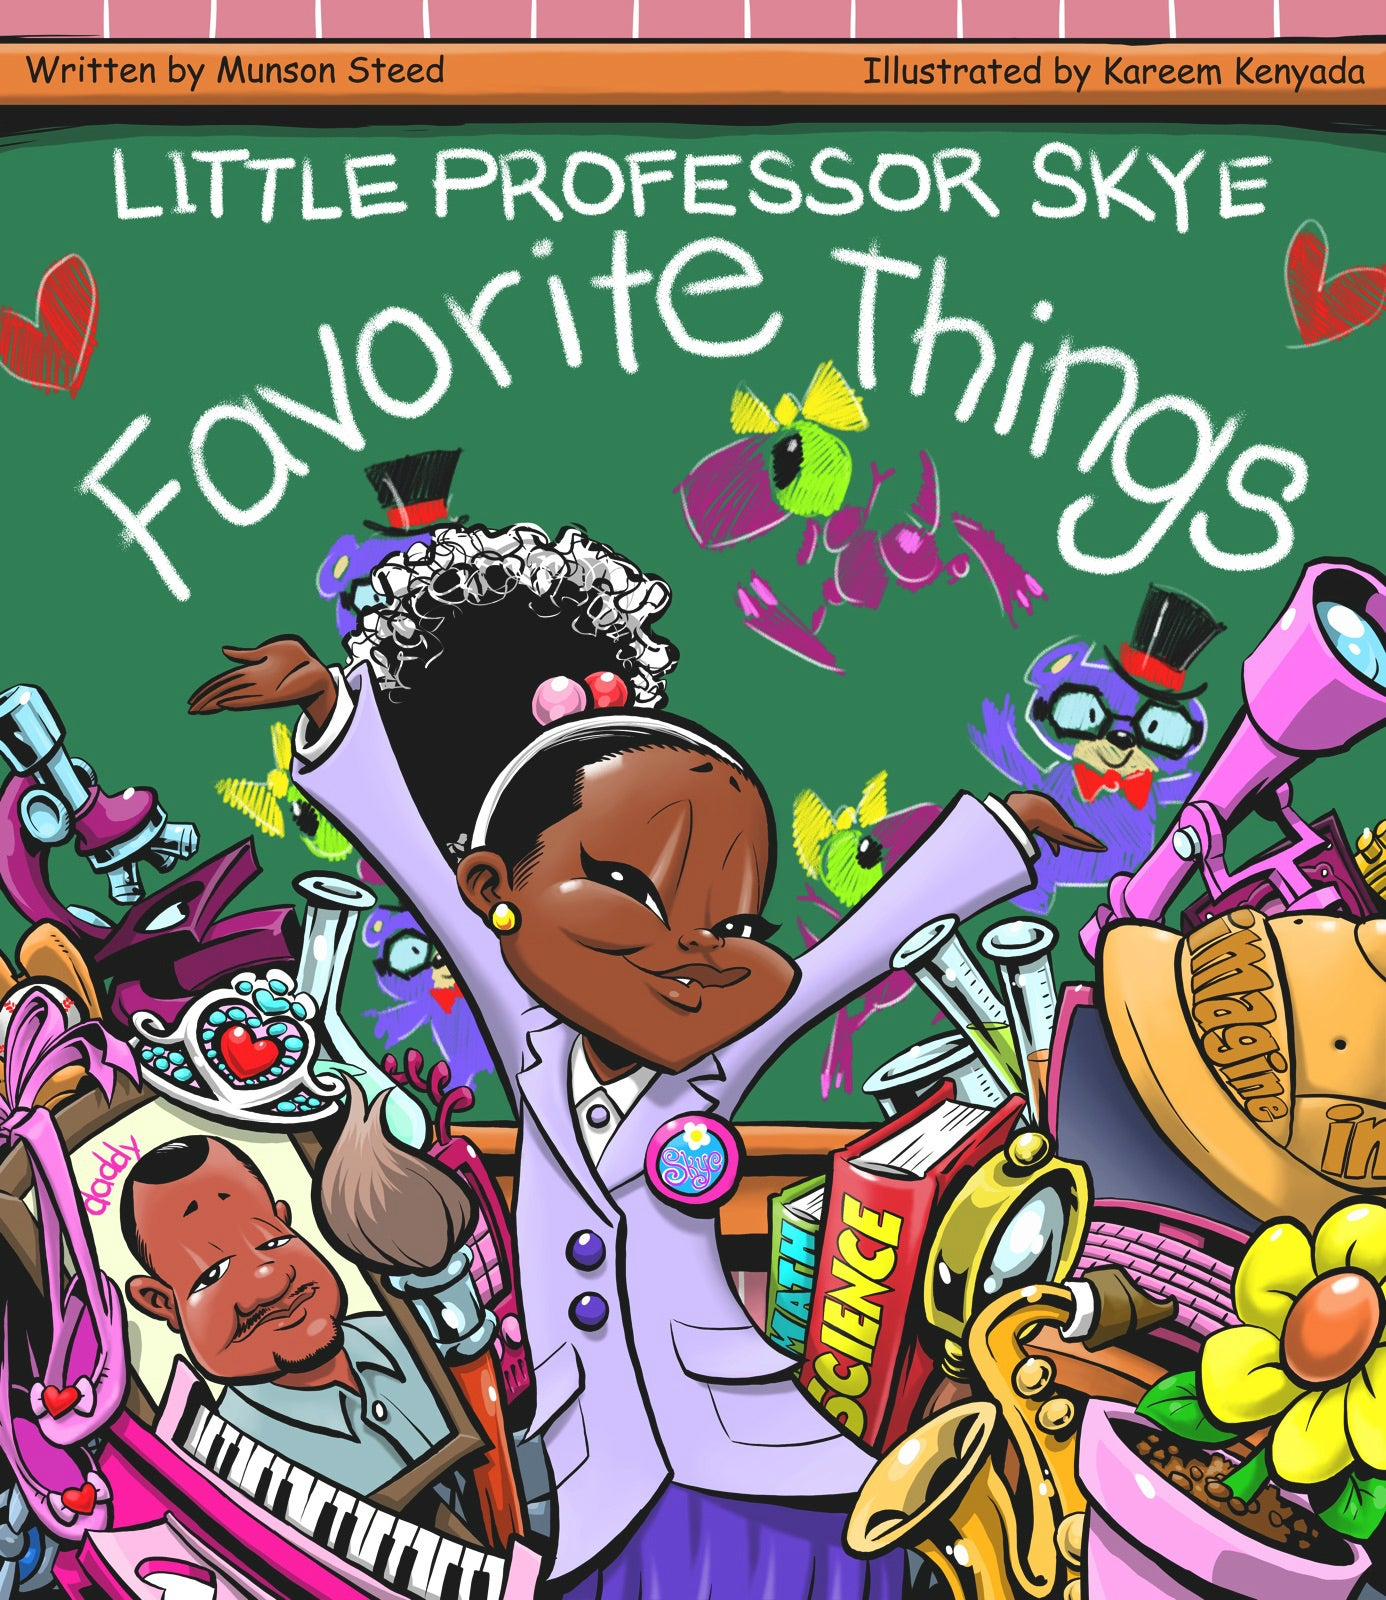 'Little Professor Skye' Book Series Depicts Young Black Girls As Doctors, Scientists And More